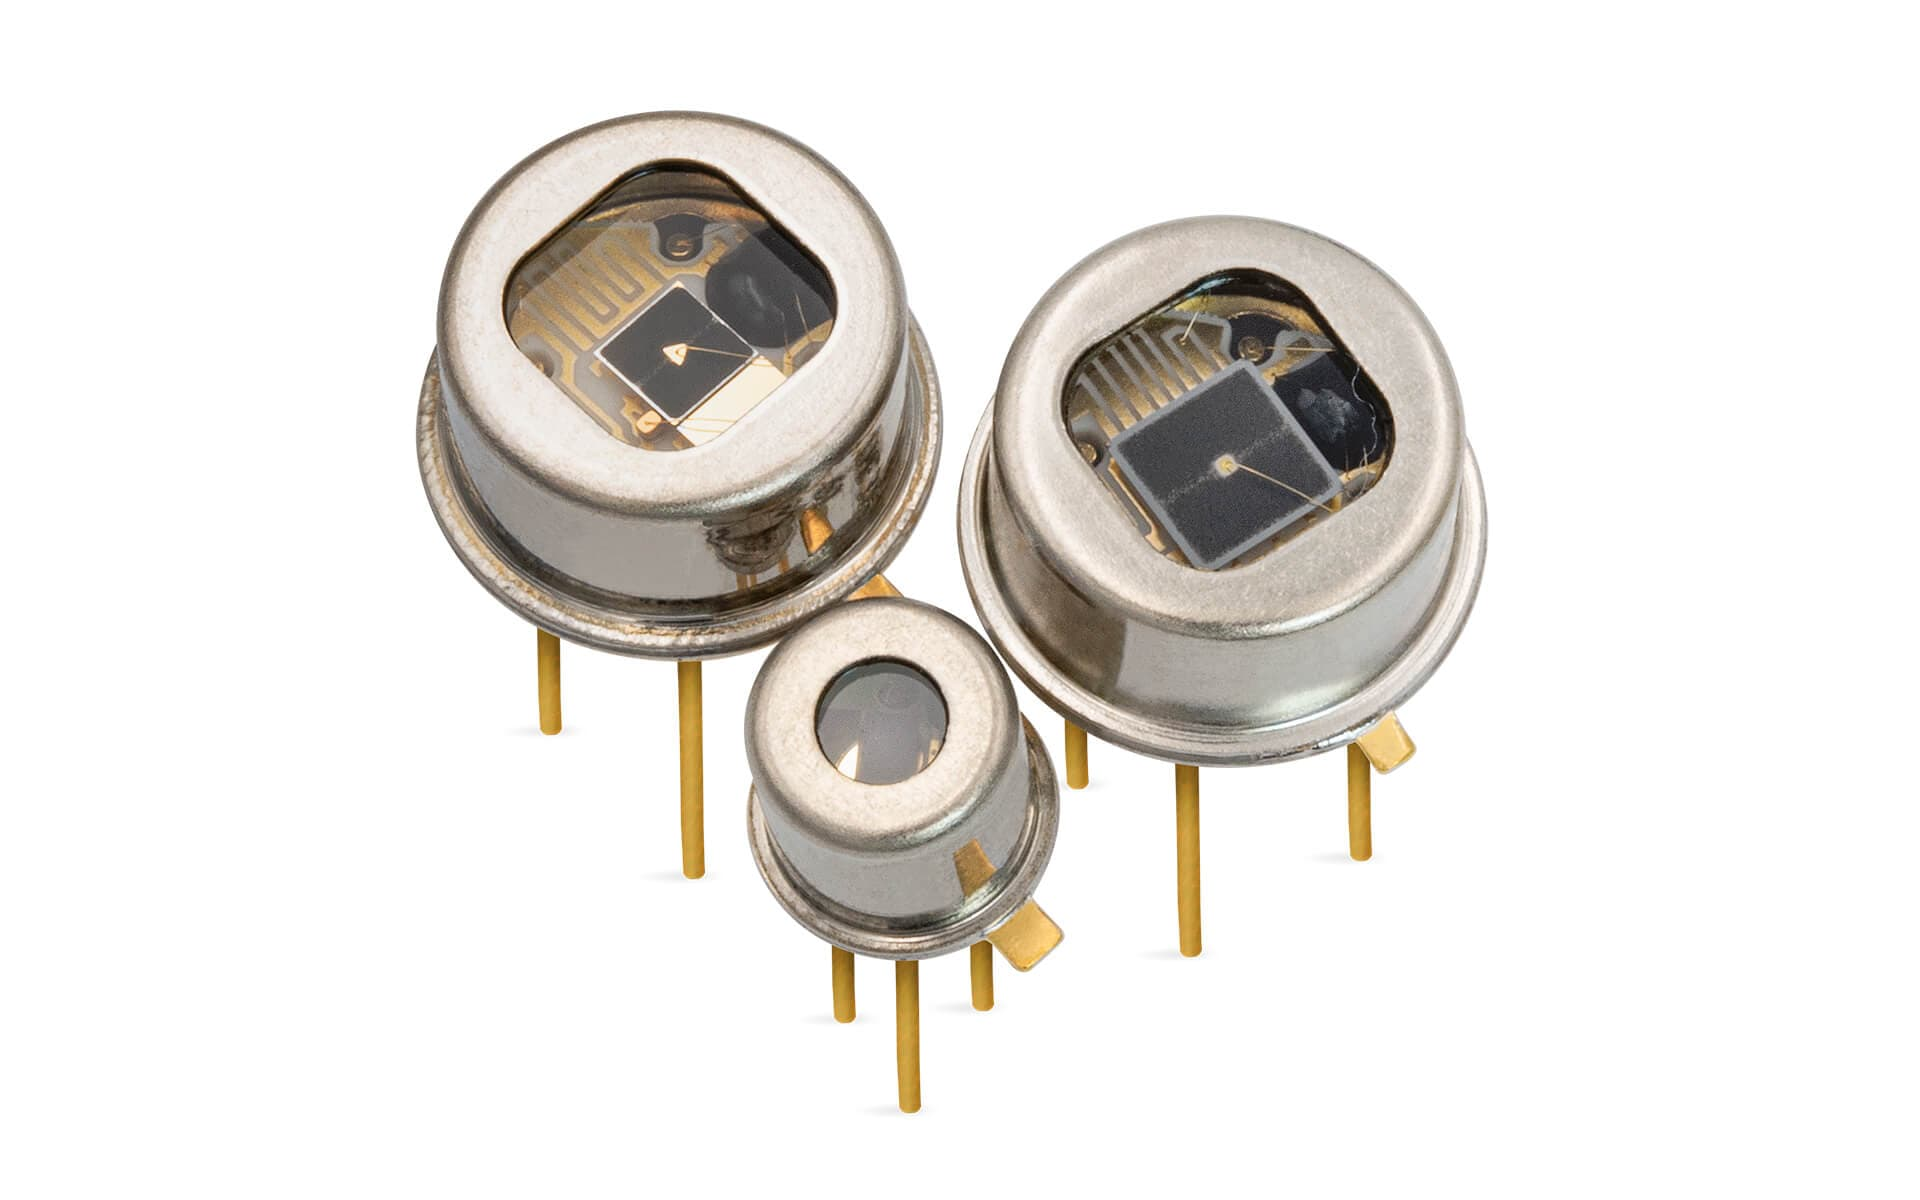 Single channel detectors from InfraTec